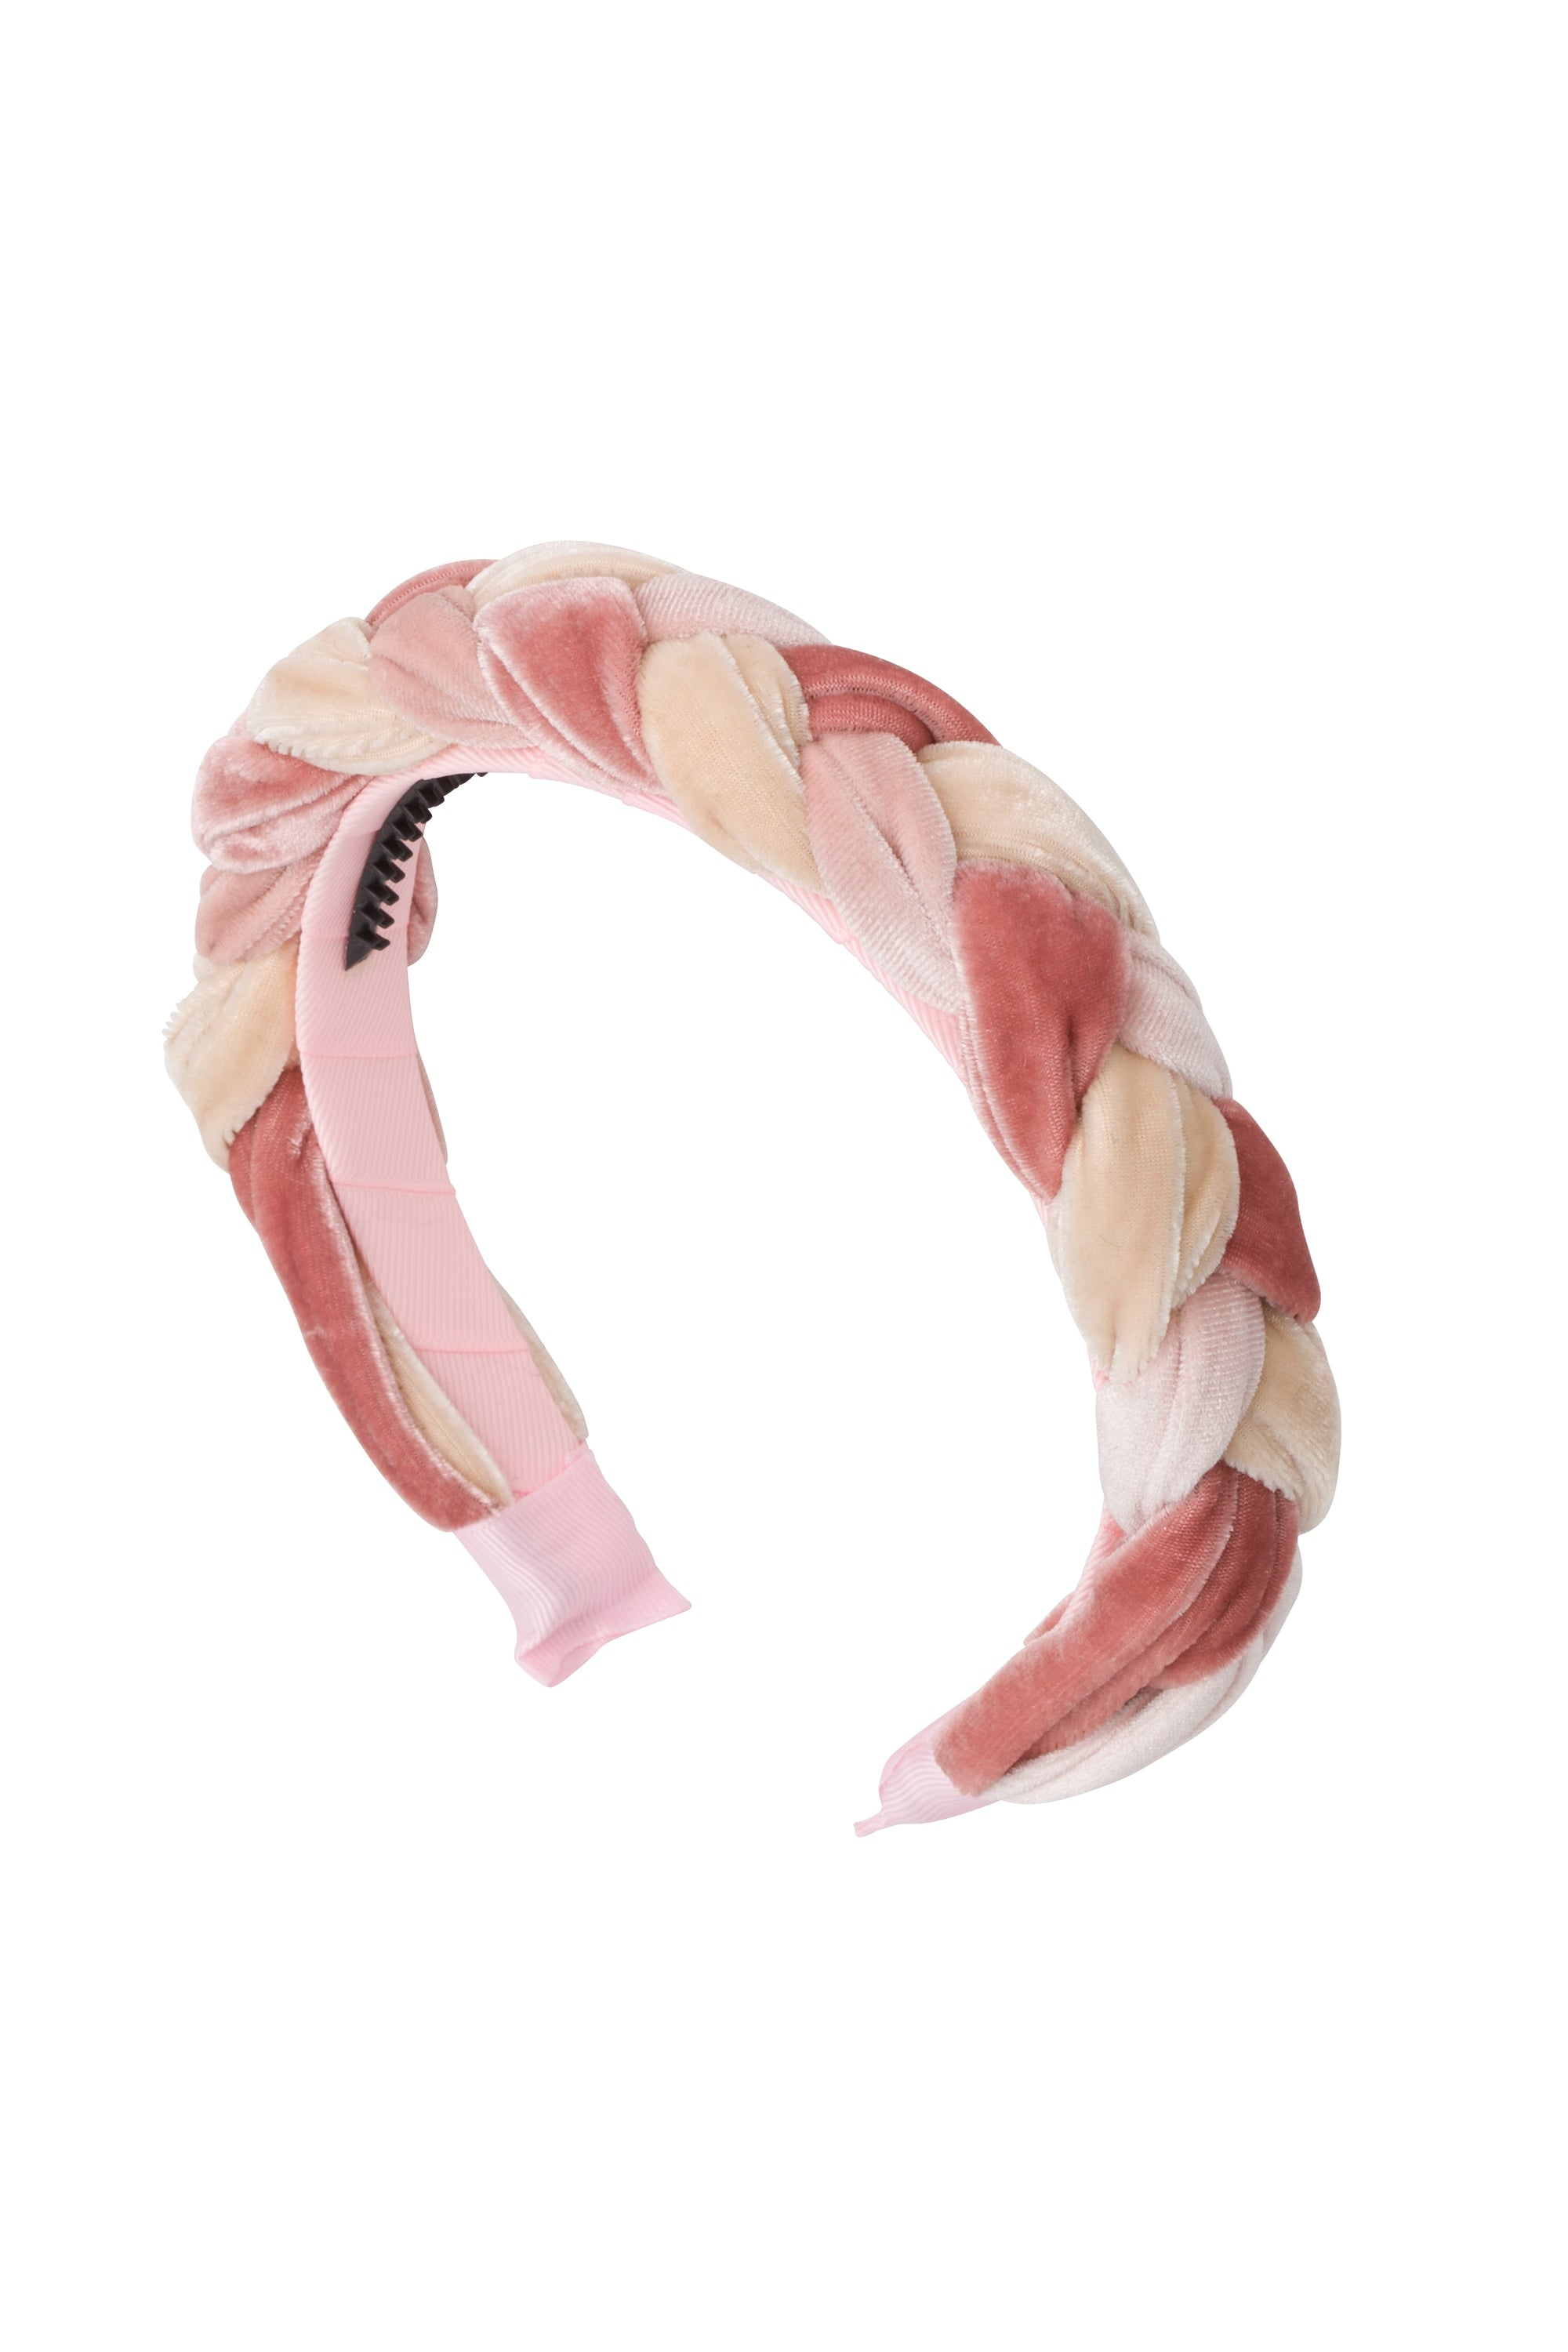 Coronation Day Headband - Ivory/Rose/Blush Combo - PROJECT 6, modest fashion